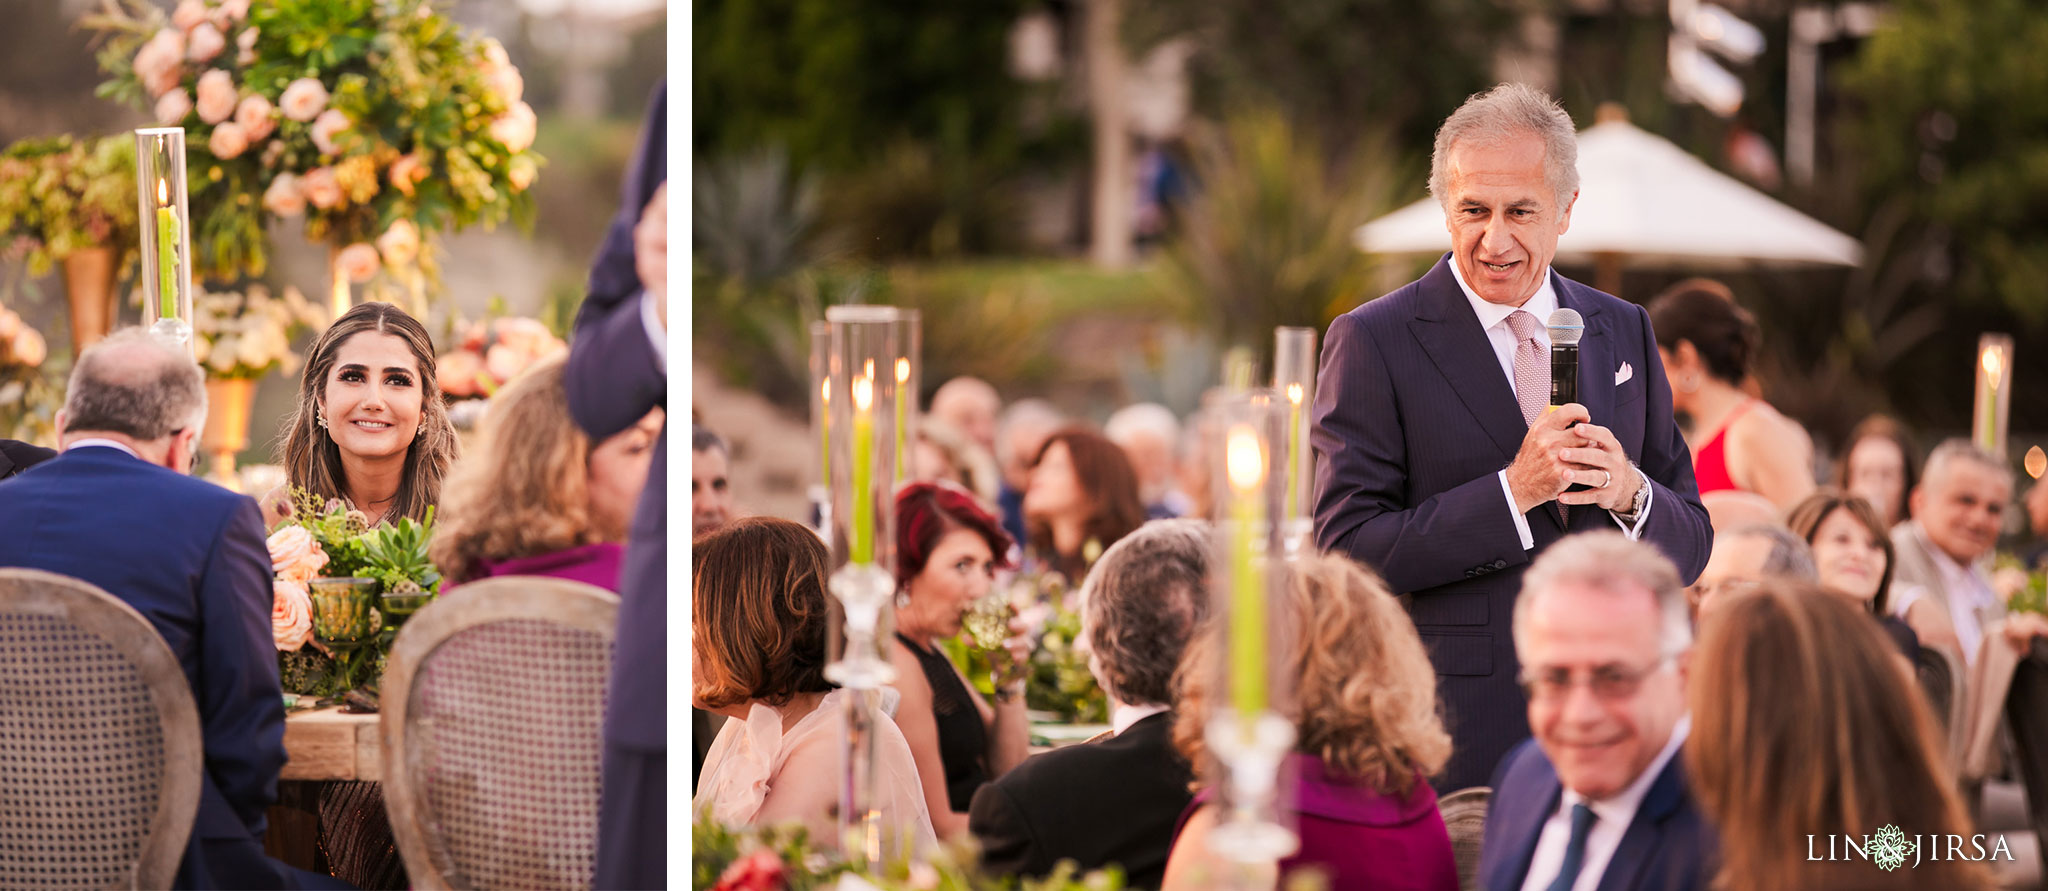 015 monarch beach resort dana point engagement party photography